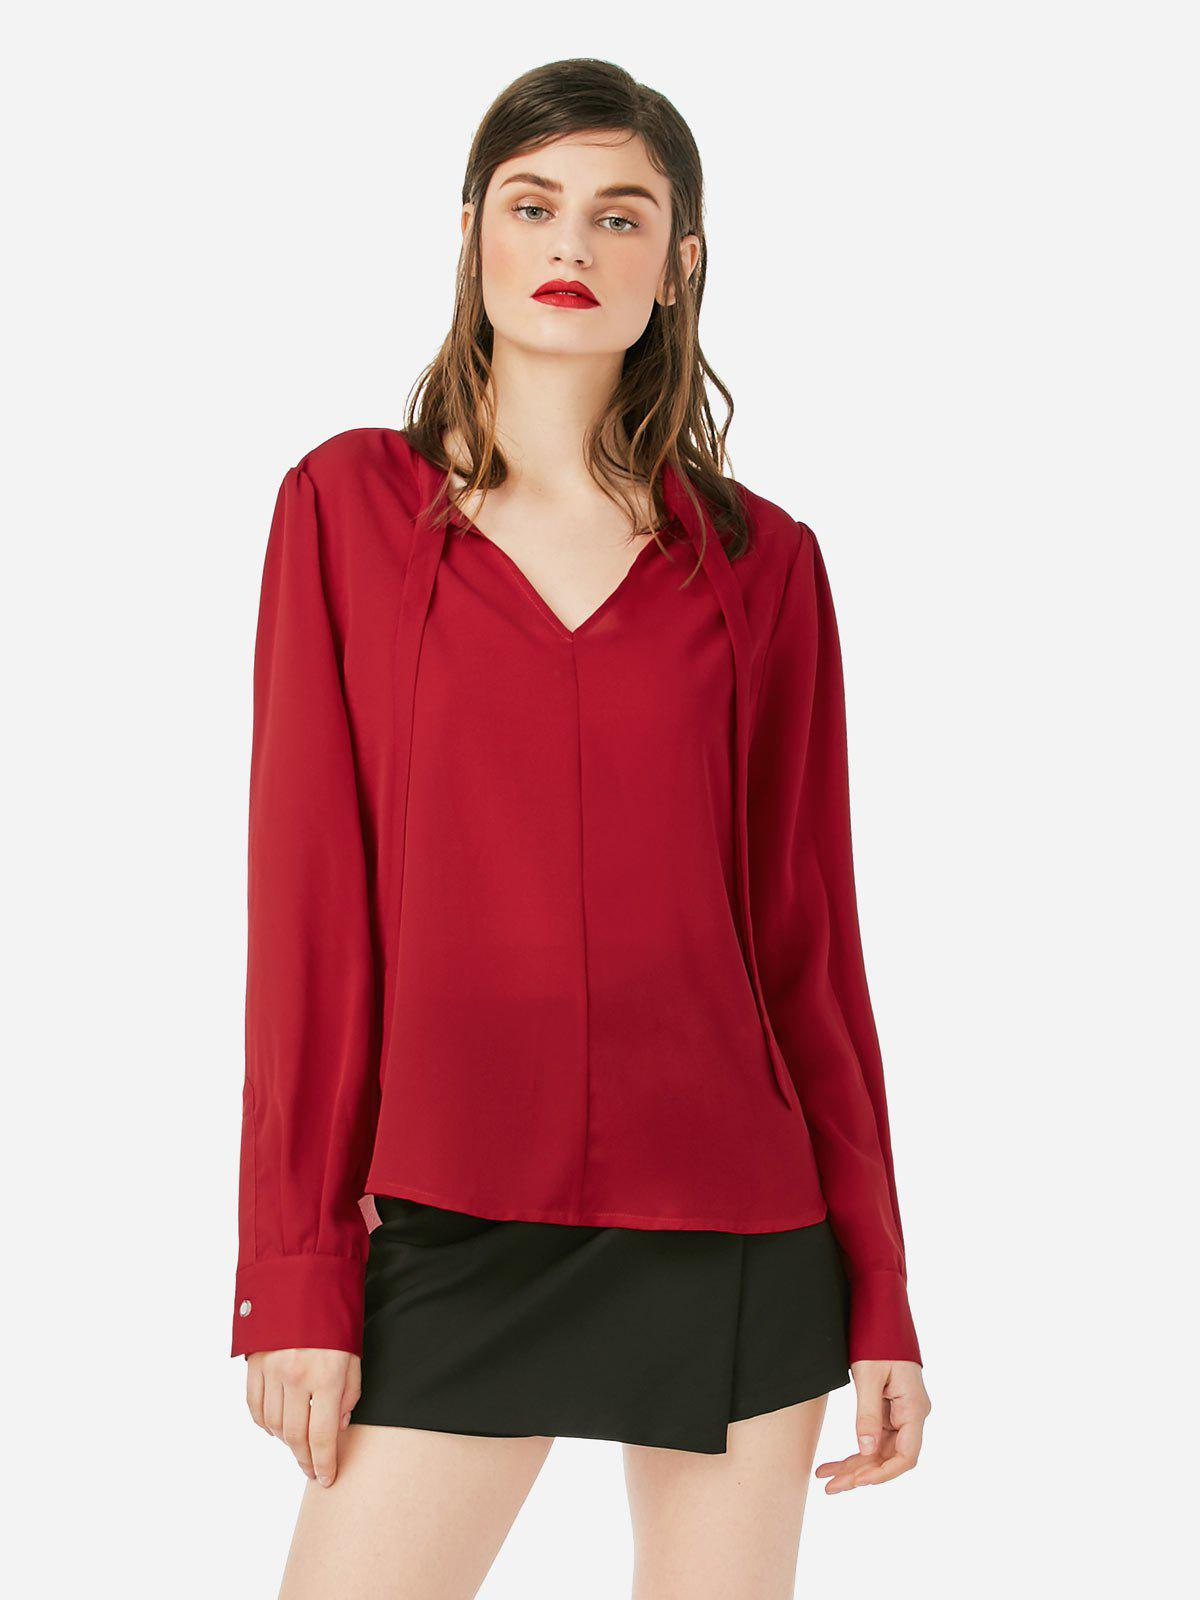 ZAN.STYLE Tie Neck Blouse - WINE RED S